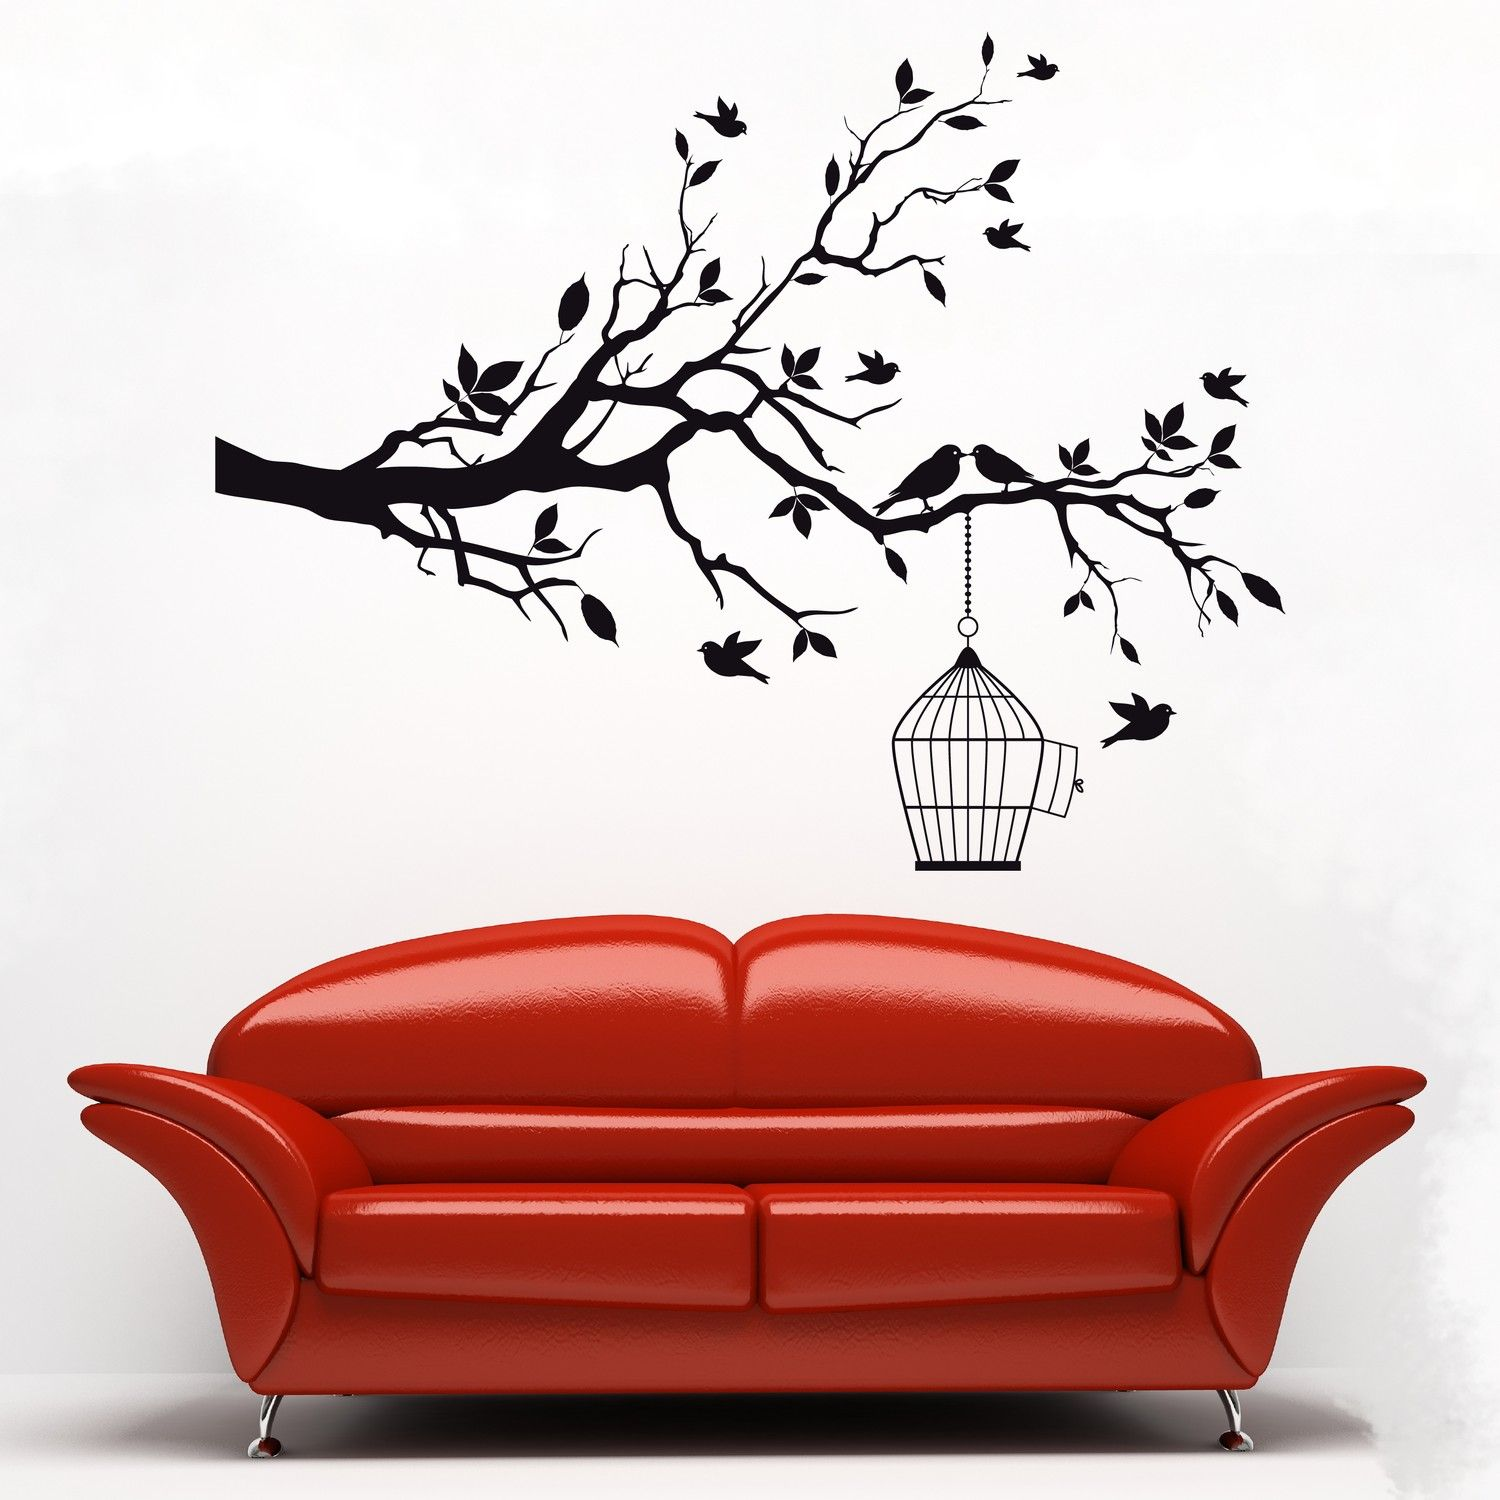 Modern Vinyl Wall Art Modern Black Silhouette Branch With Birds And Birdcage